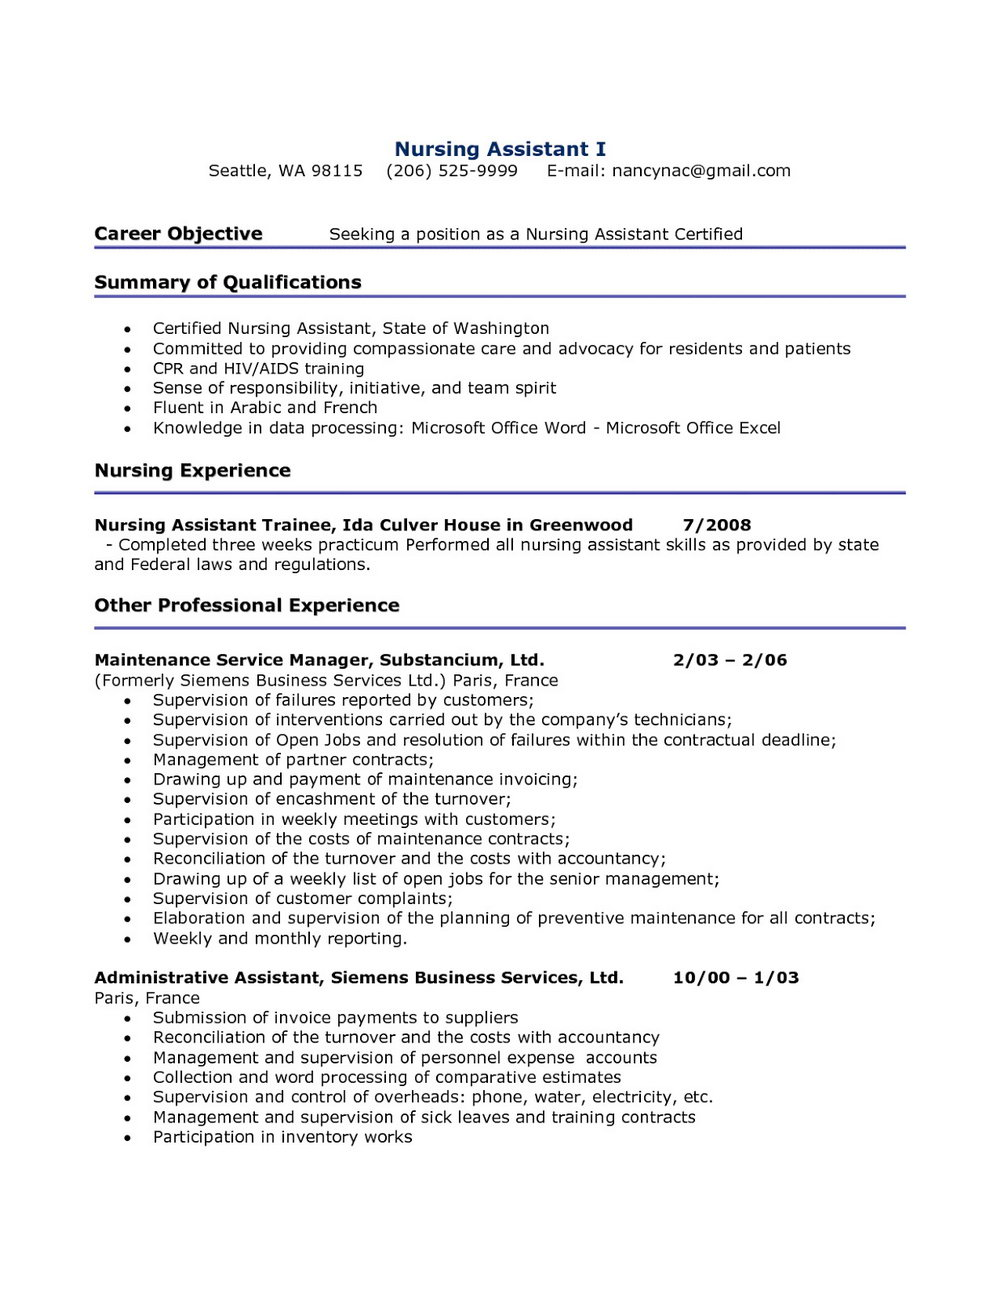 Resume For Restorative Nursing Assistant